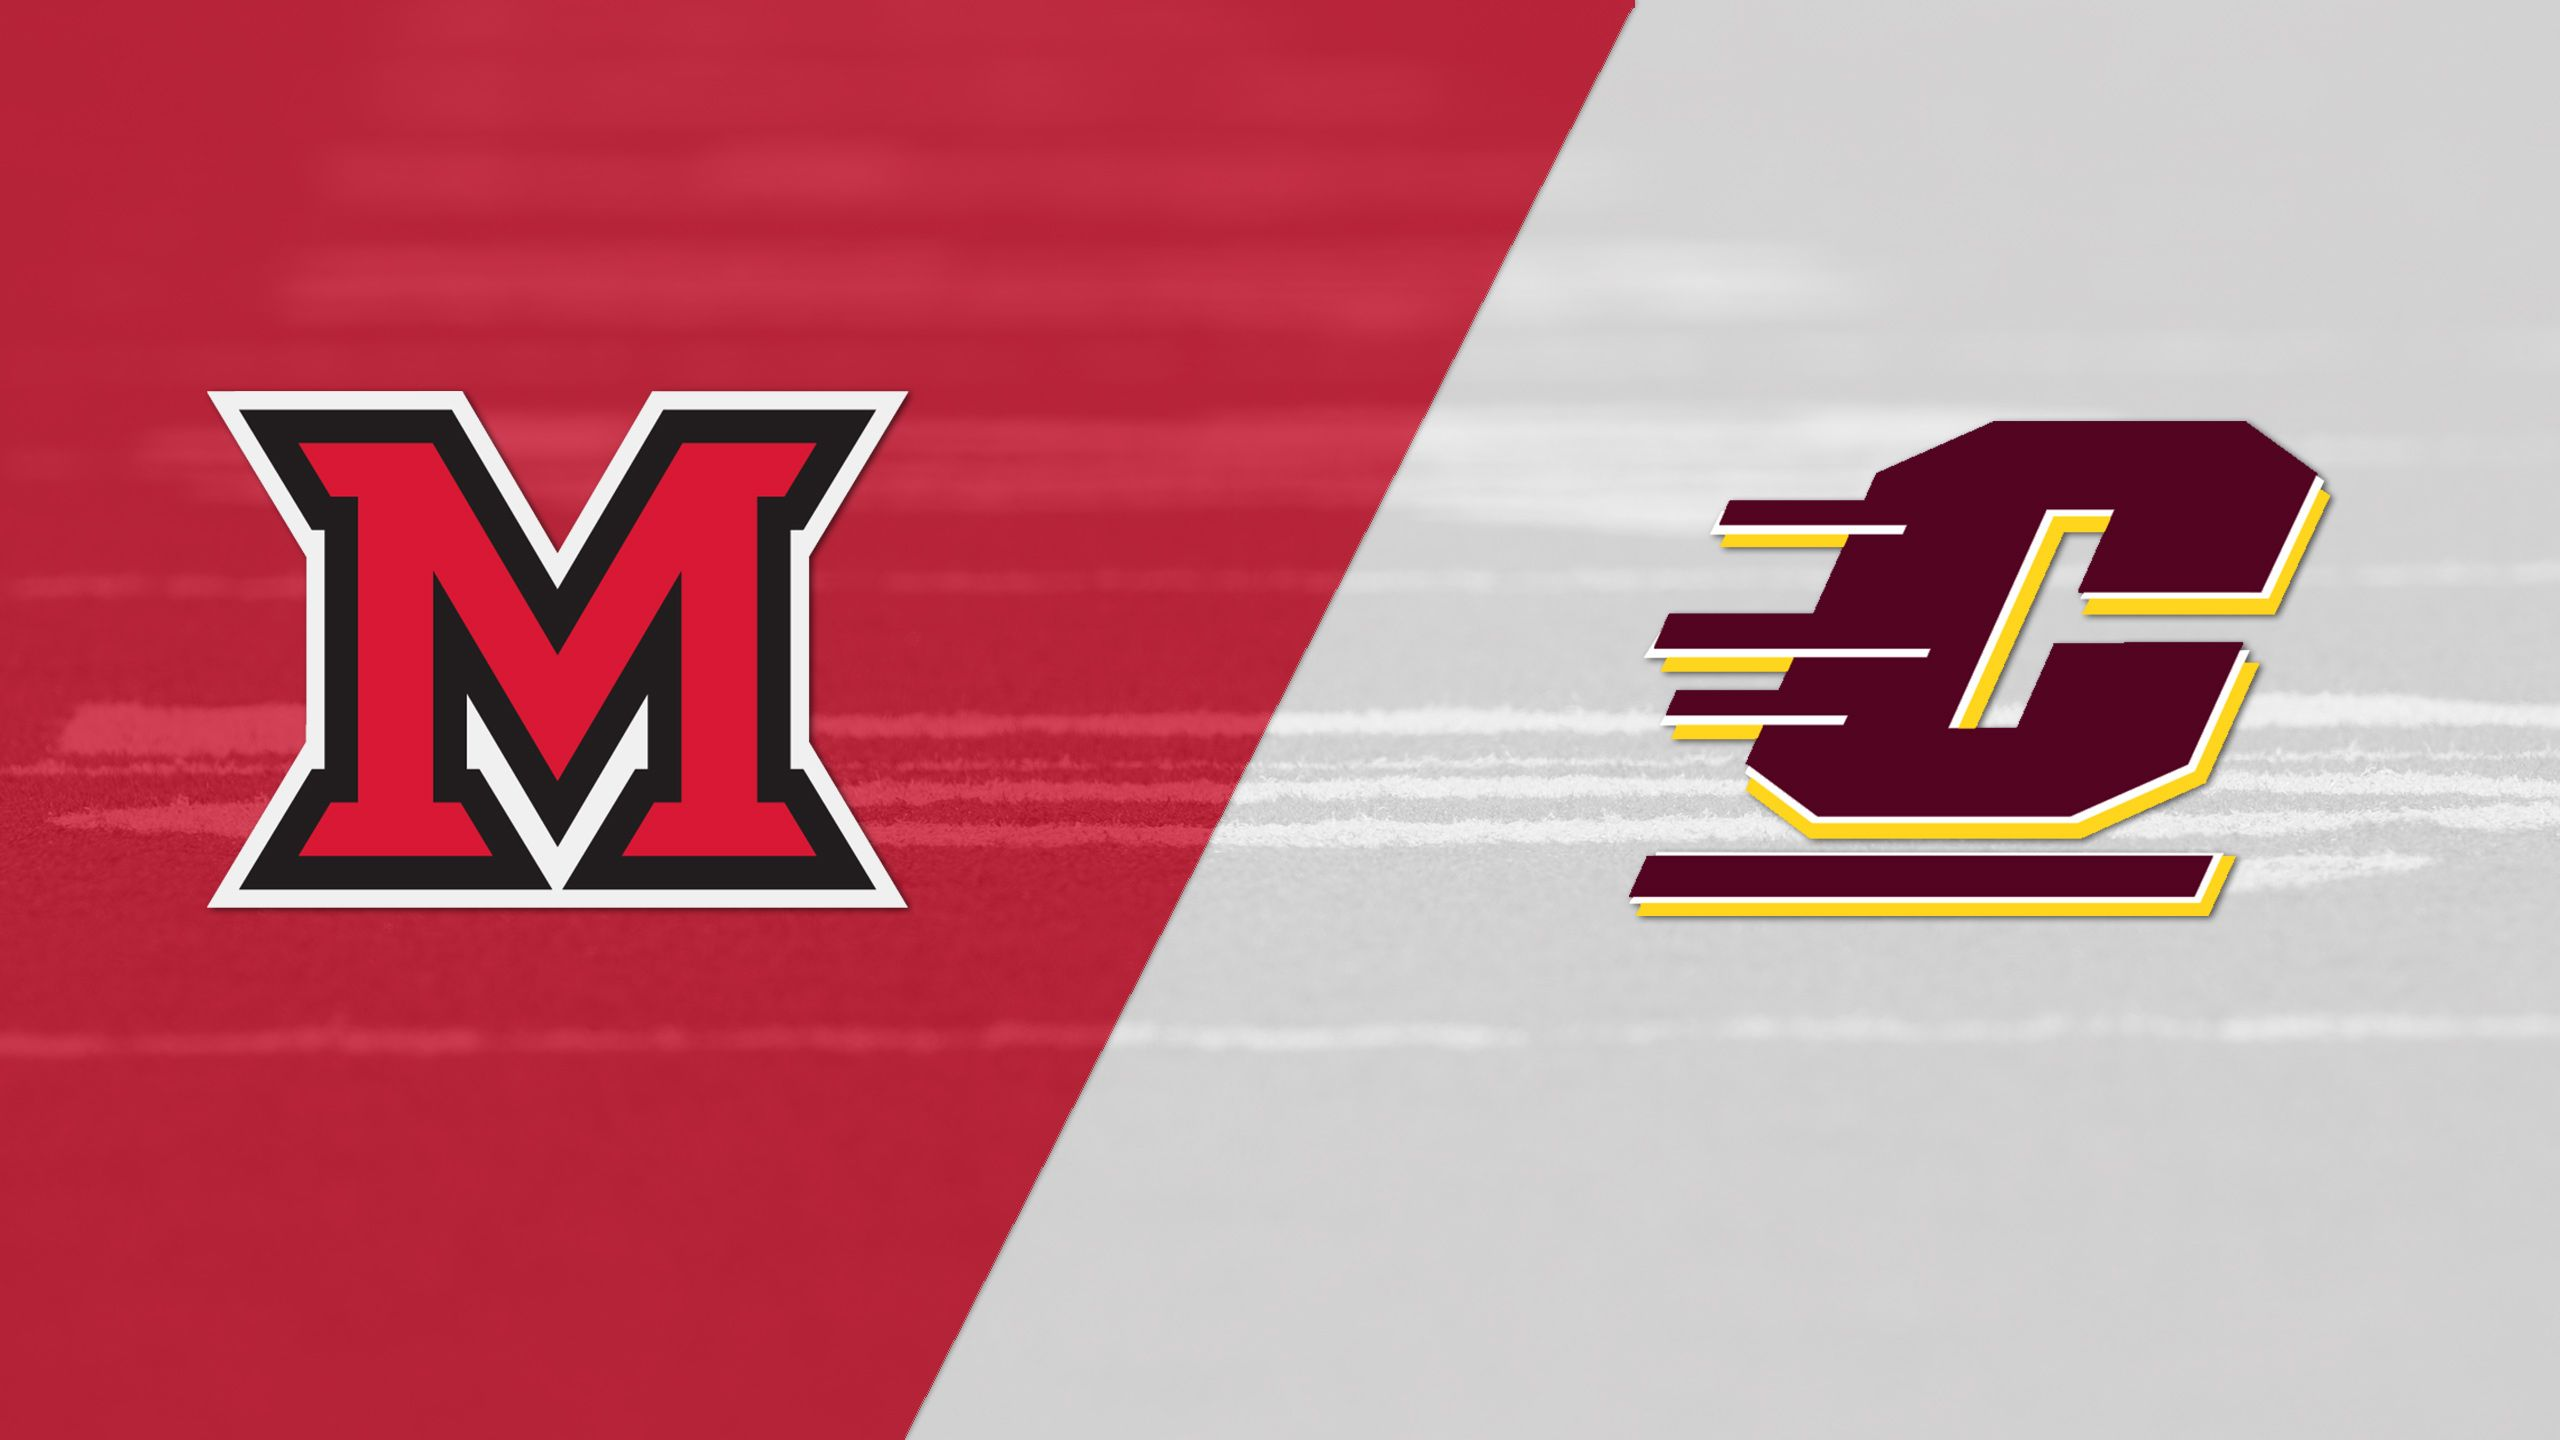 Miami (OH) vs. Central Michigan (Football)